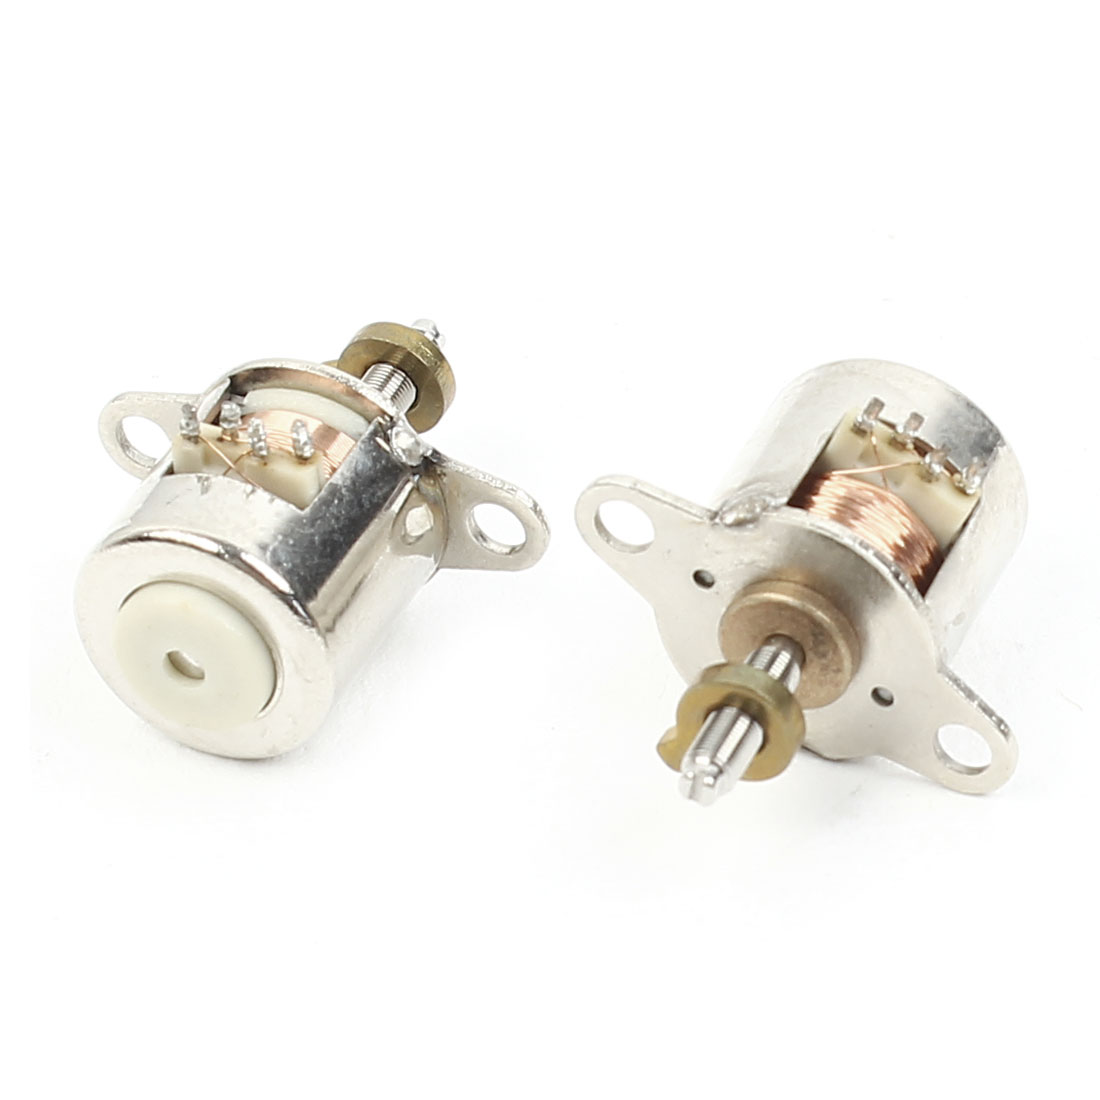 2pcs 20mm Height 8mmx2mm Shaft 10mm Diameter Stepper Motor Silver Tone